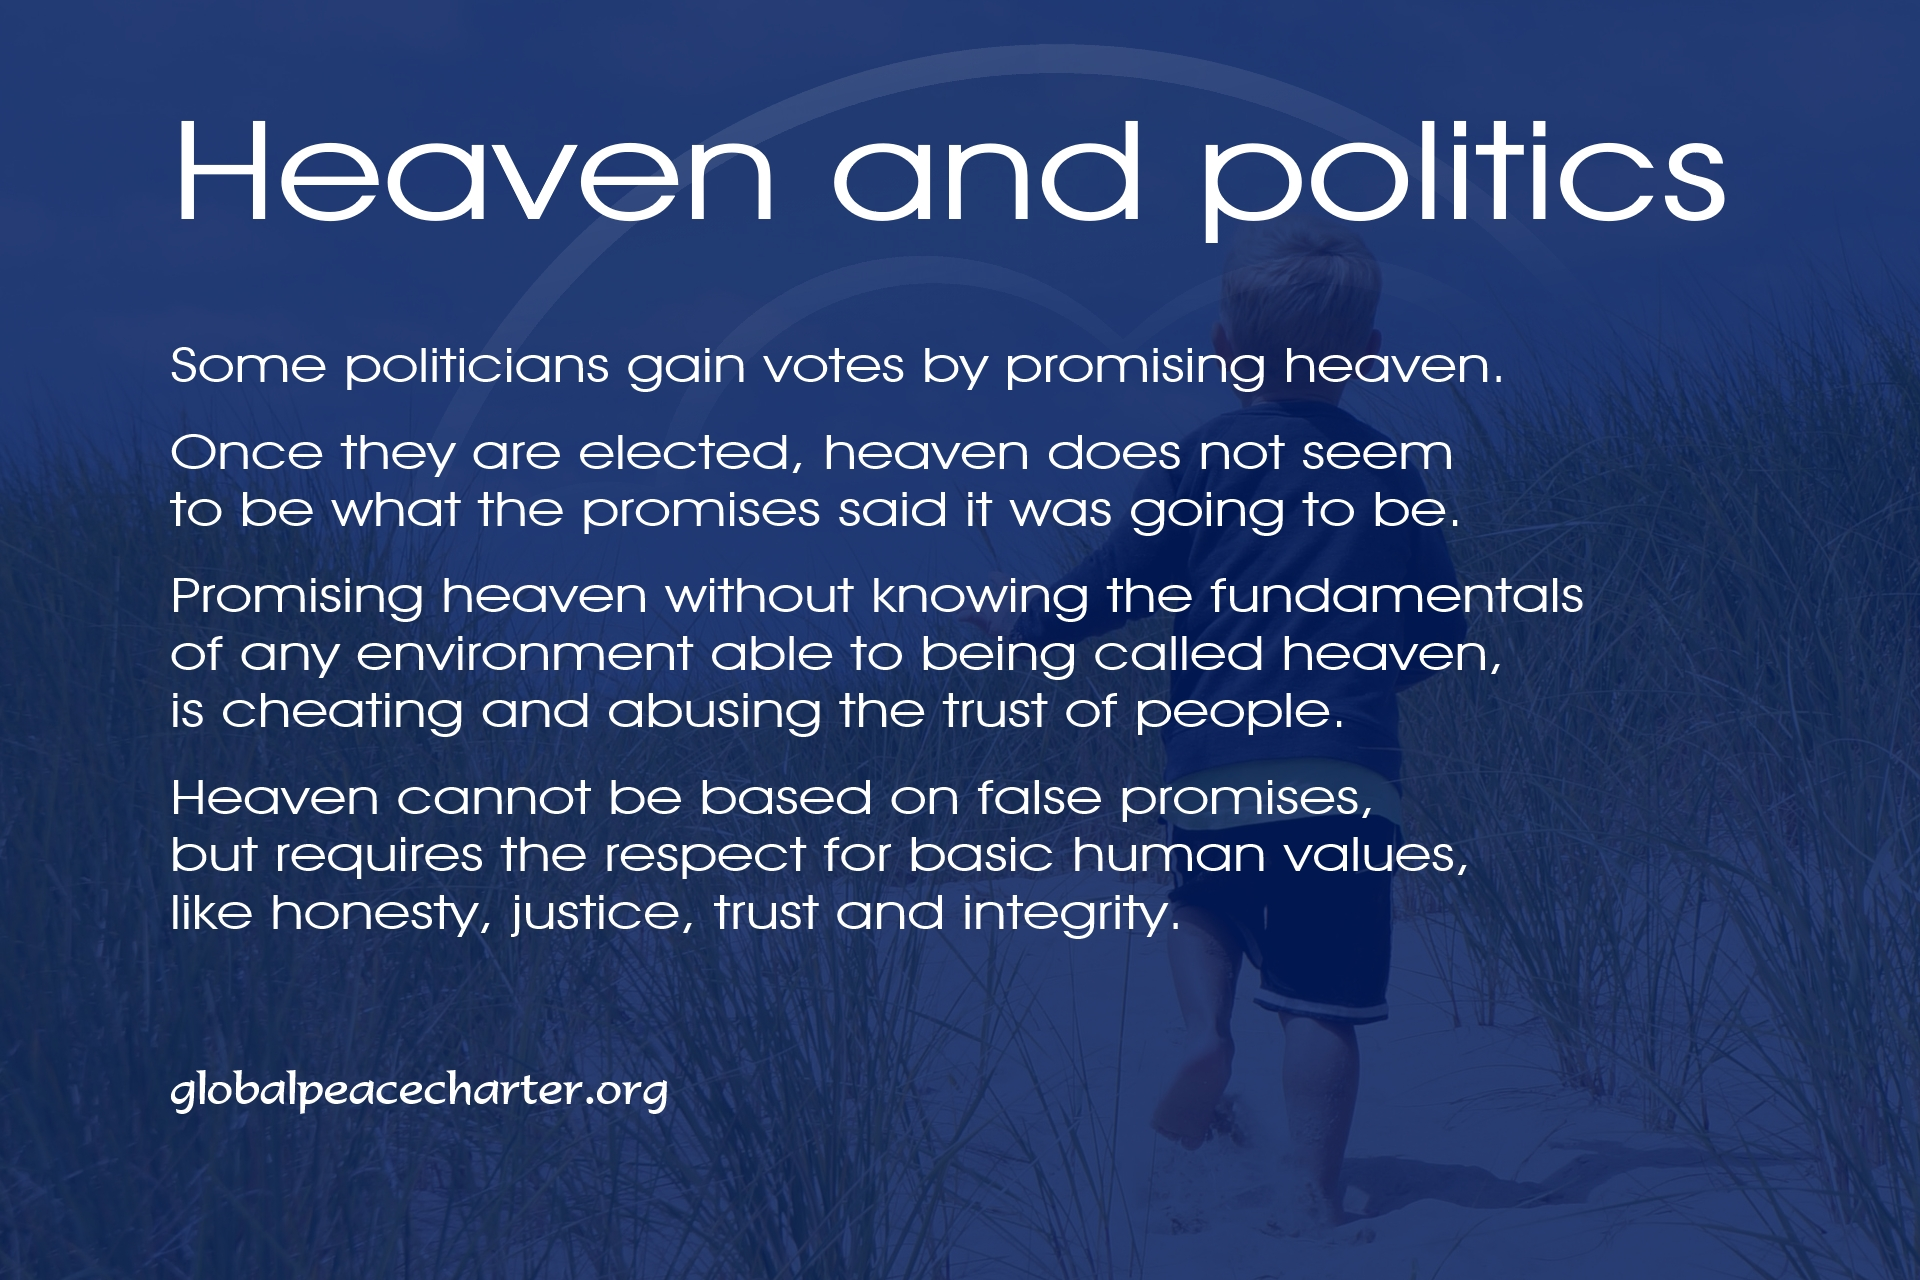 Heaven and politics